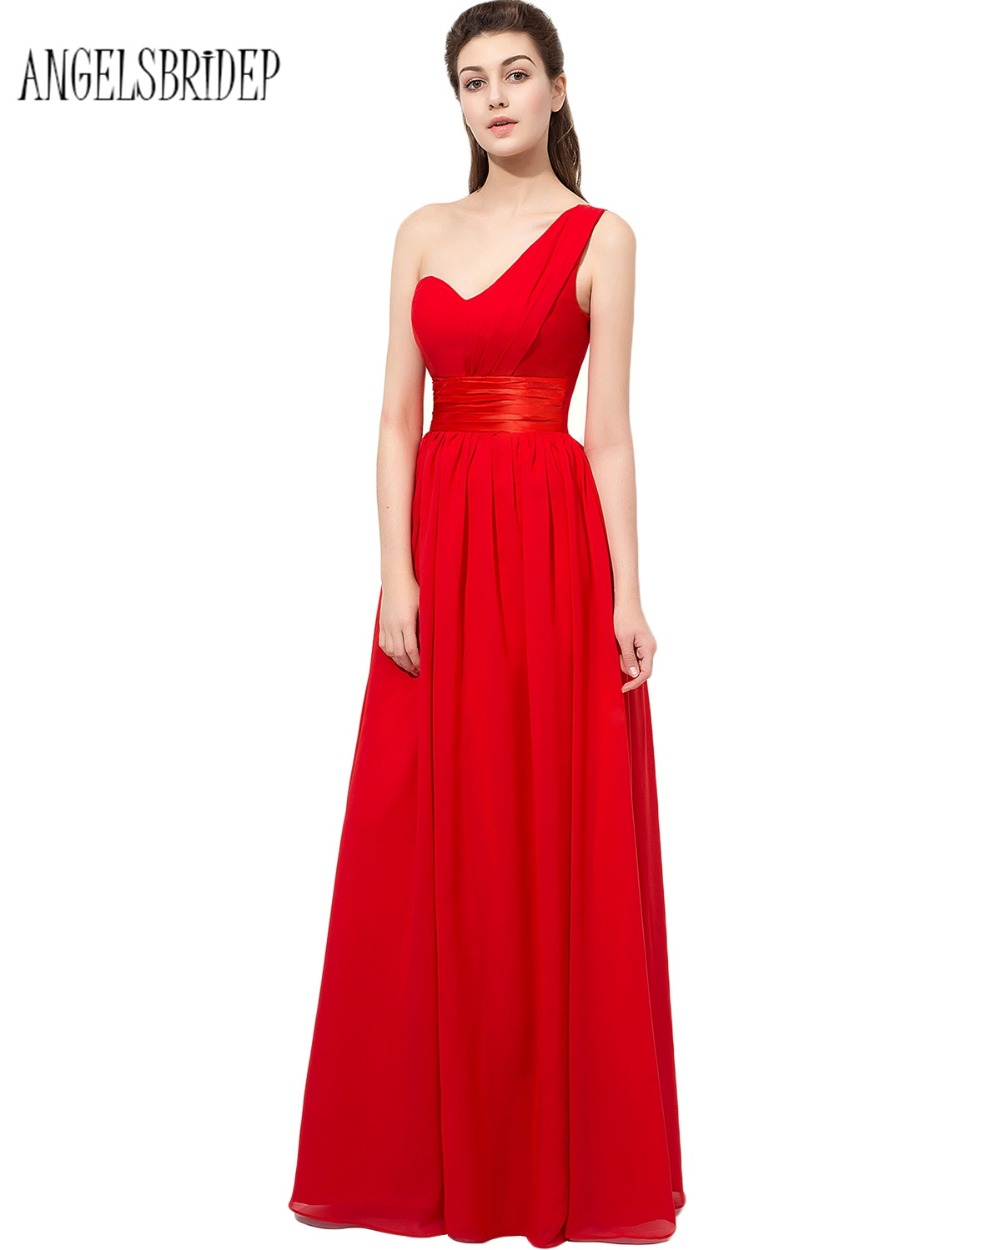 ANGELSBRIDEP Red A Line Formal Bridesmaid Dresses With